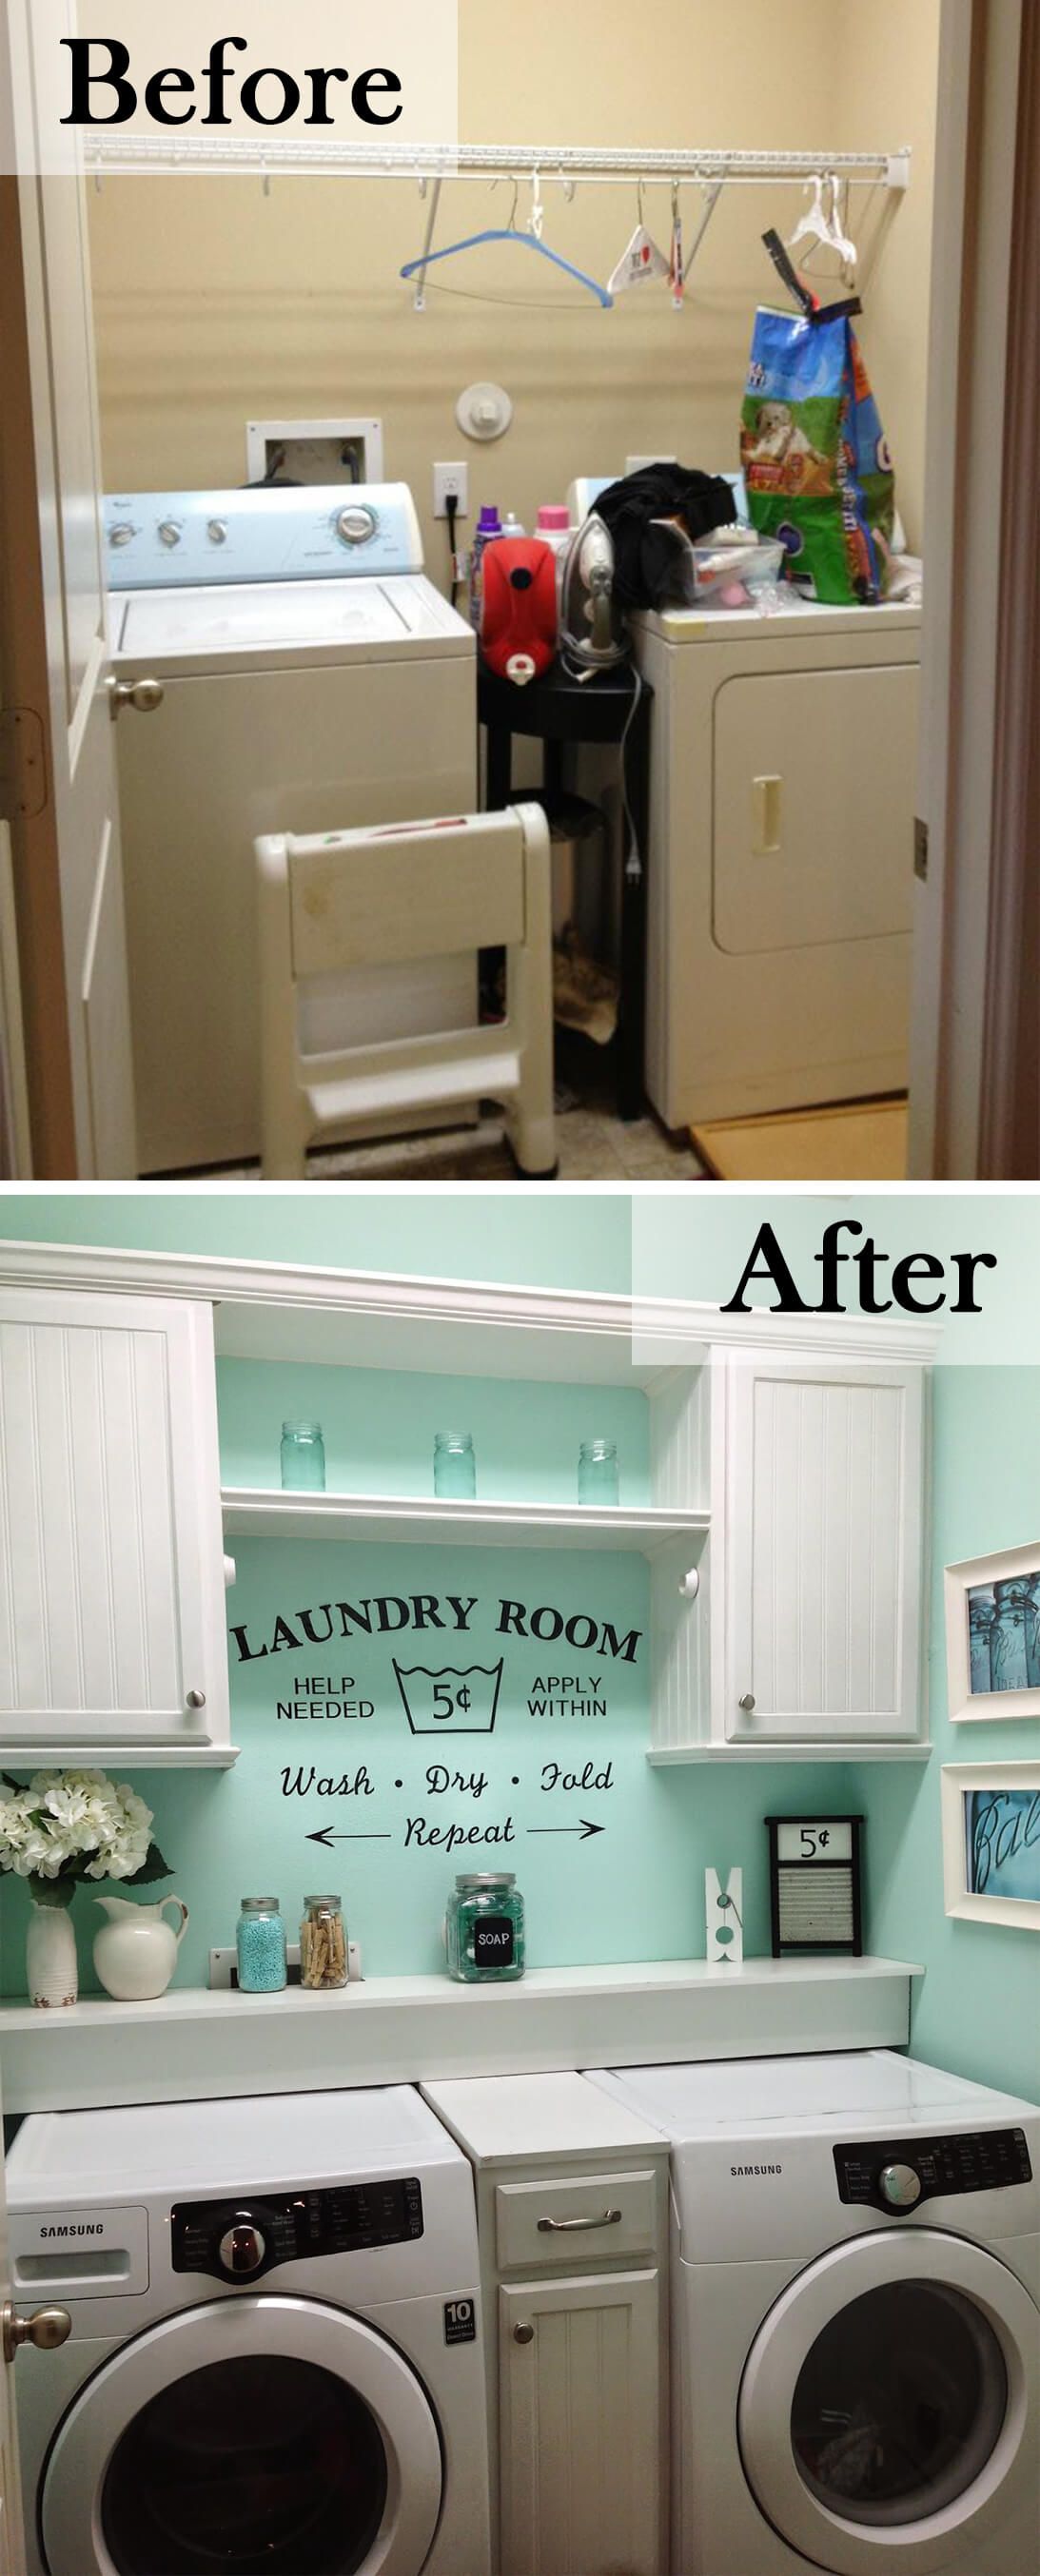 Kitchen Utility Room Ideas 23 Best Budget Friendly Laundry Room Makeover Ideas And